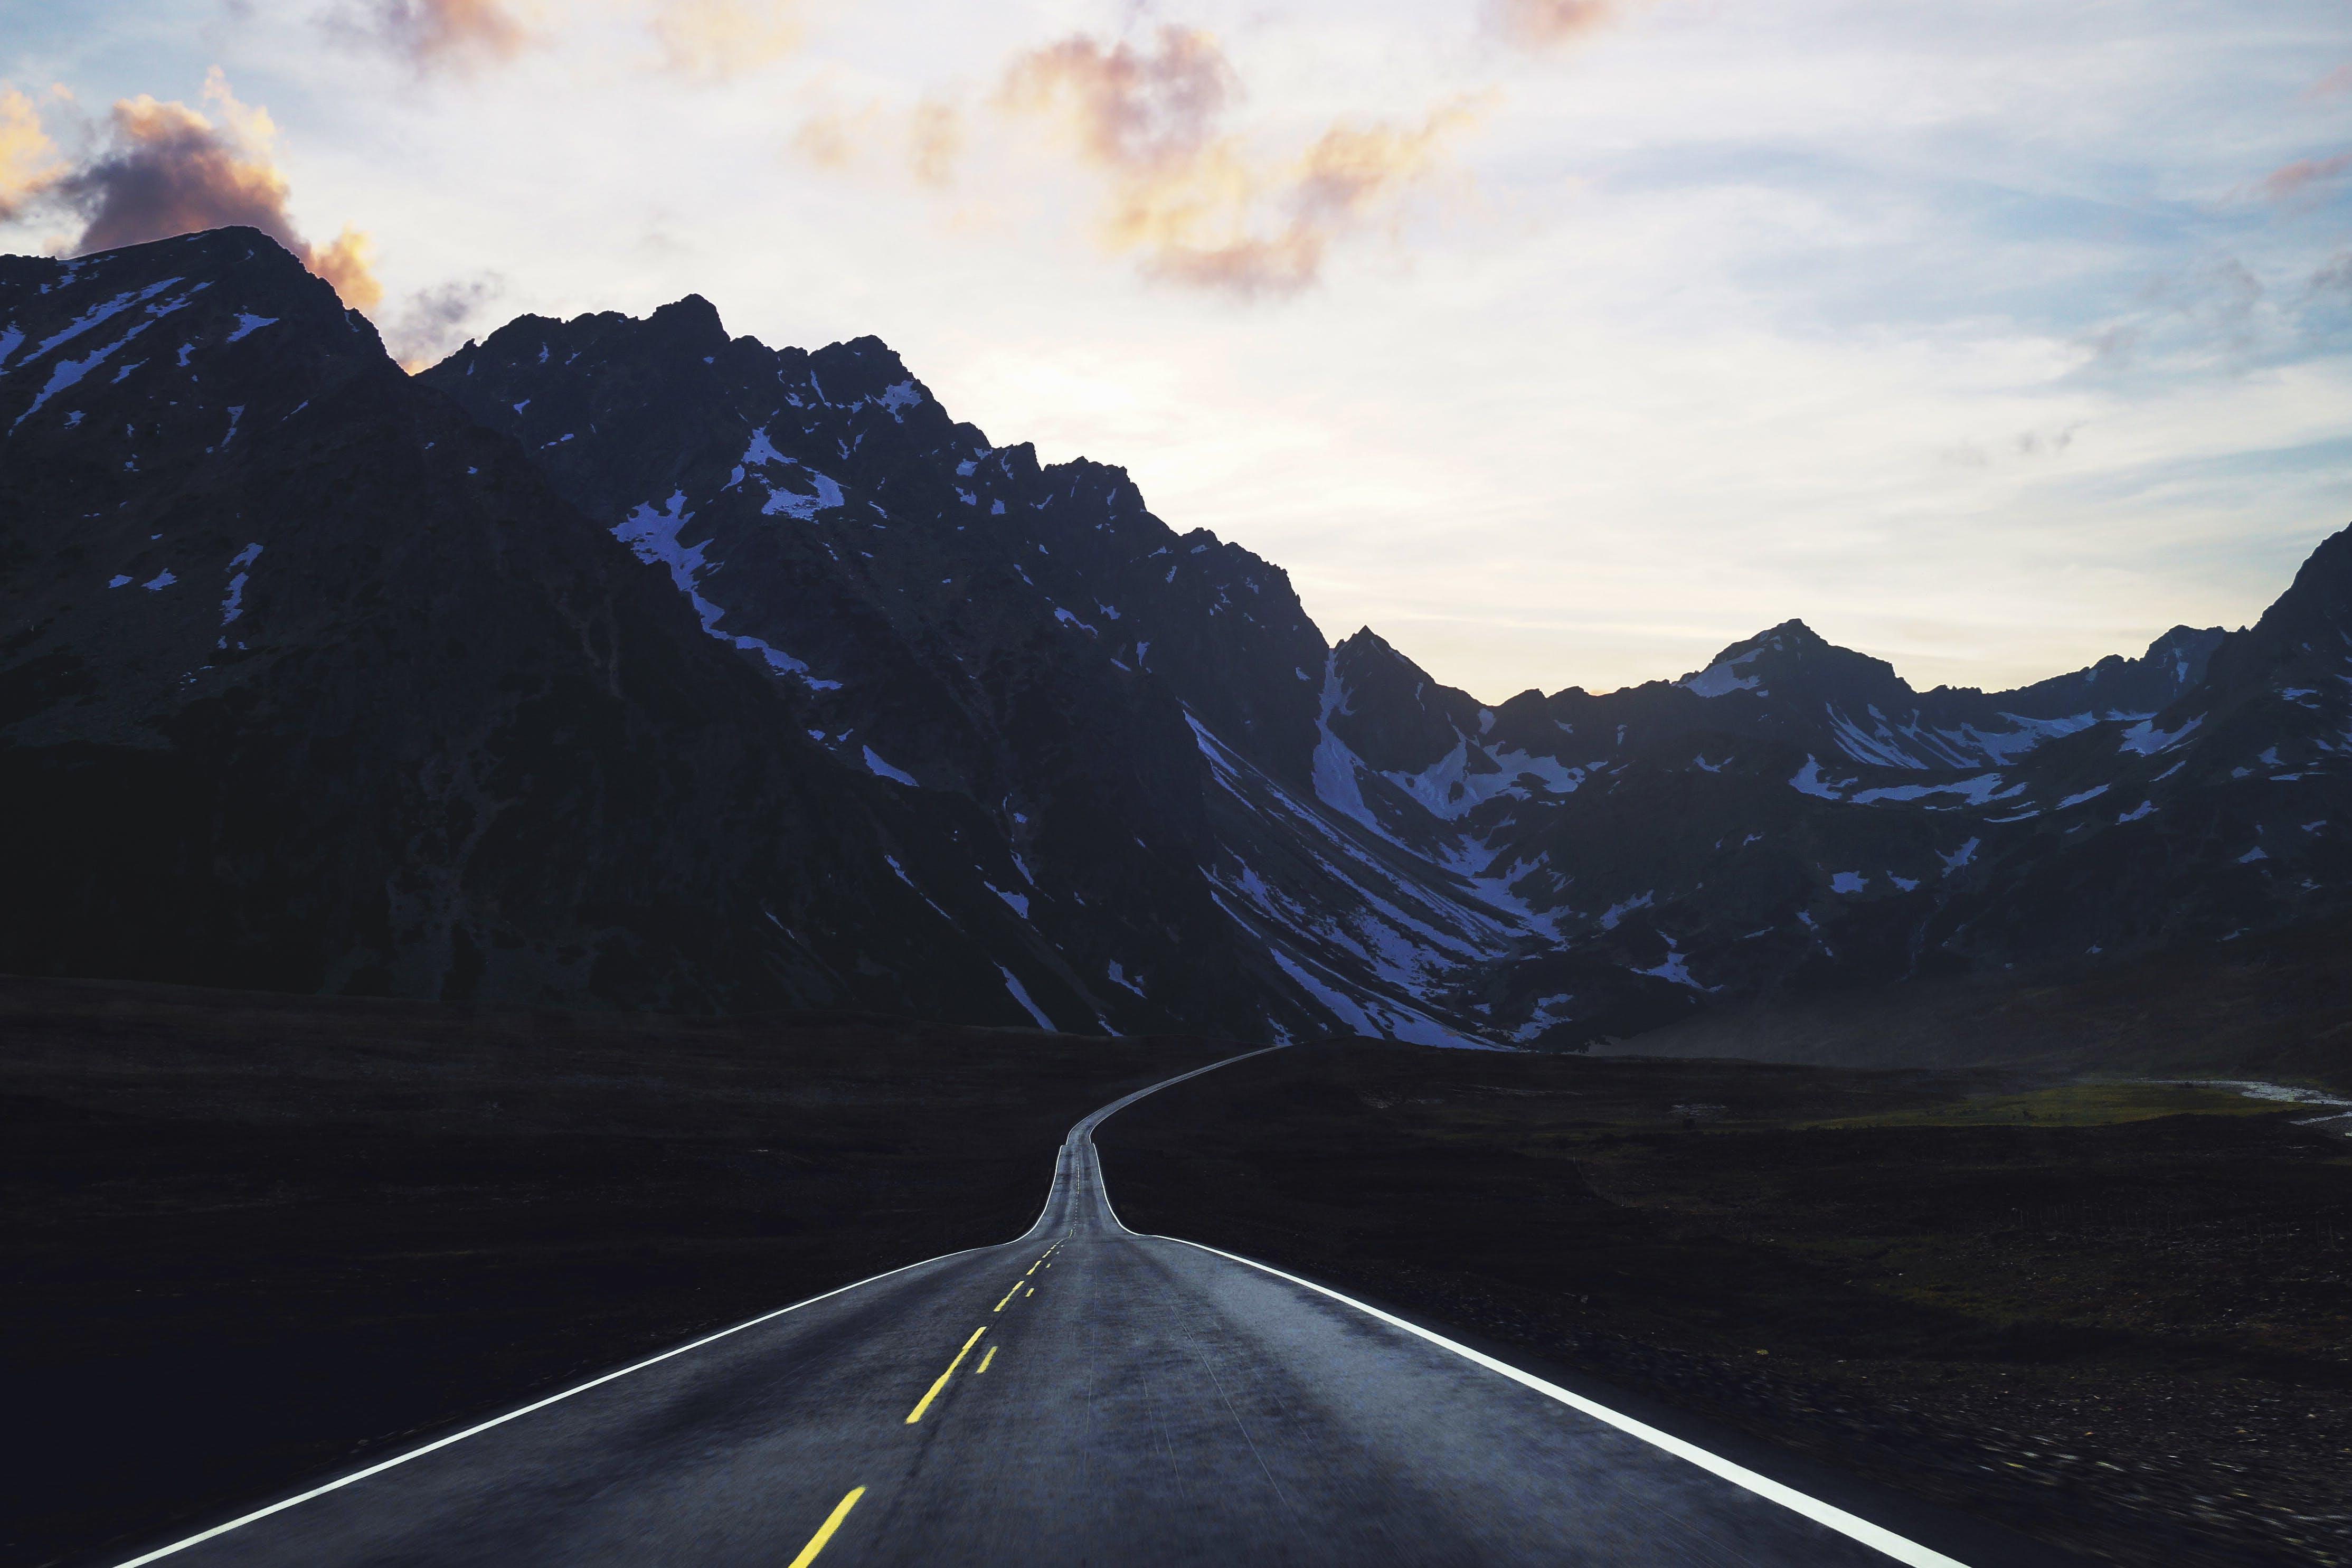 Gray Concrete Road With Mountain Ahead